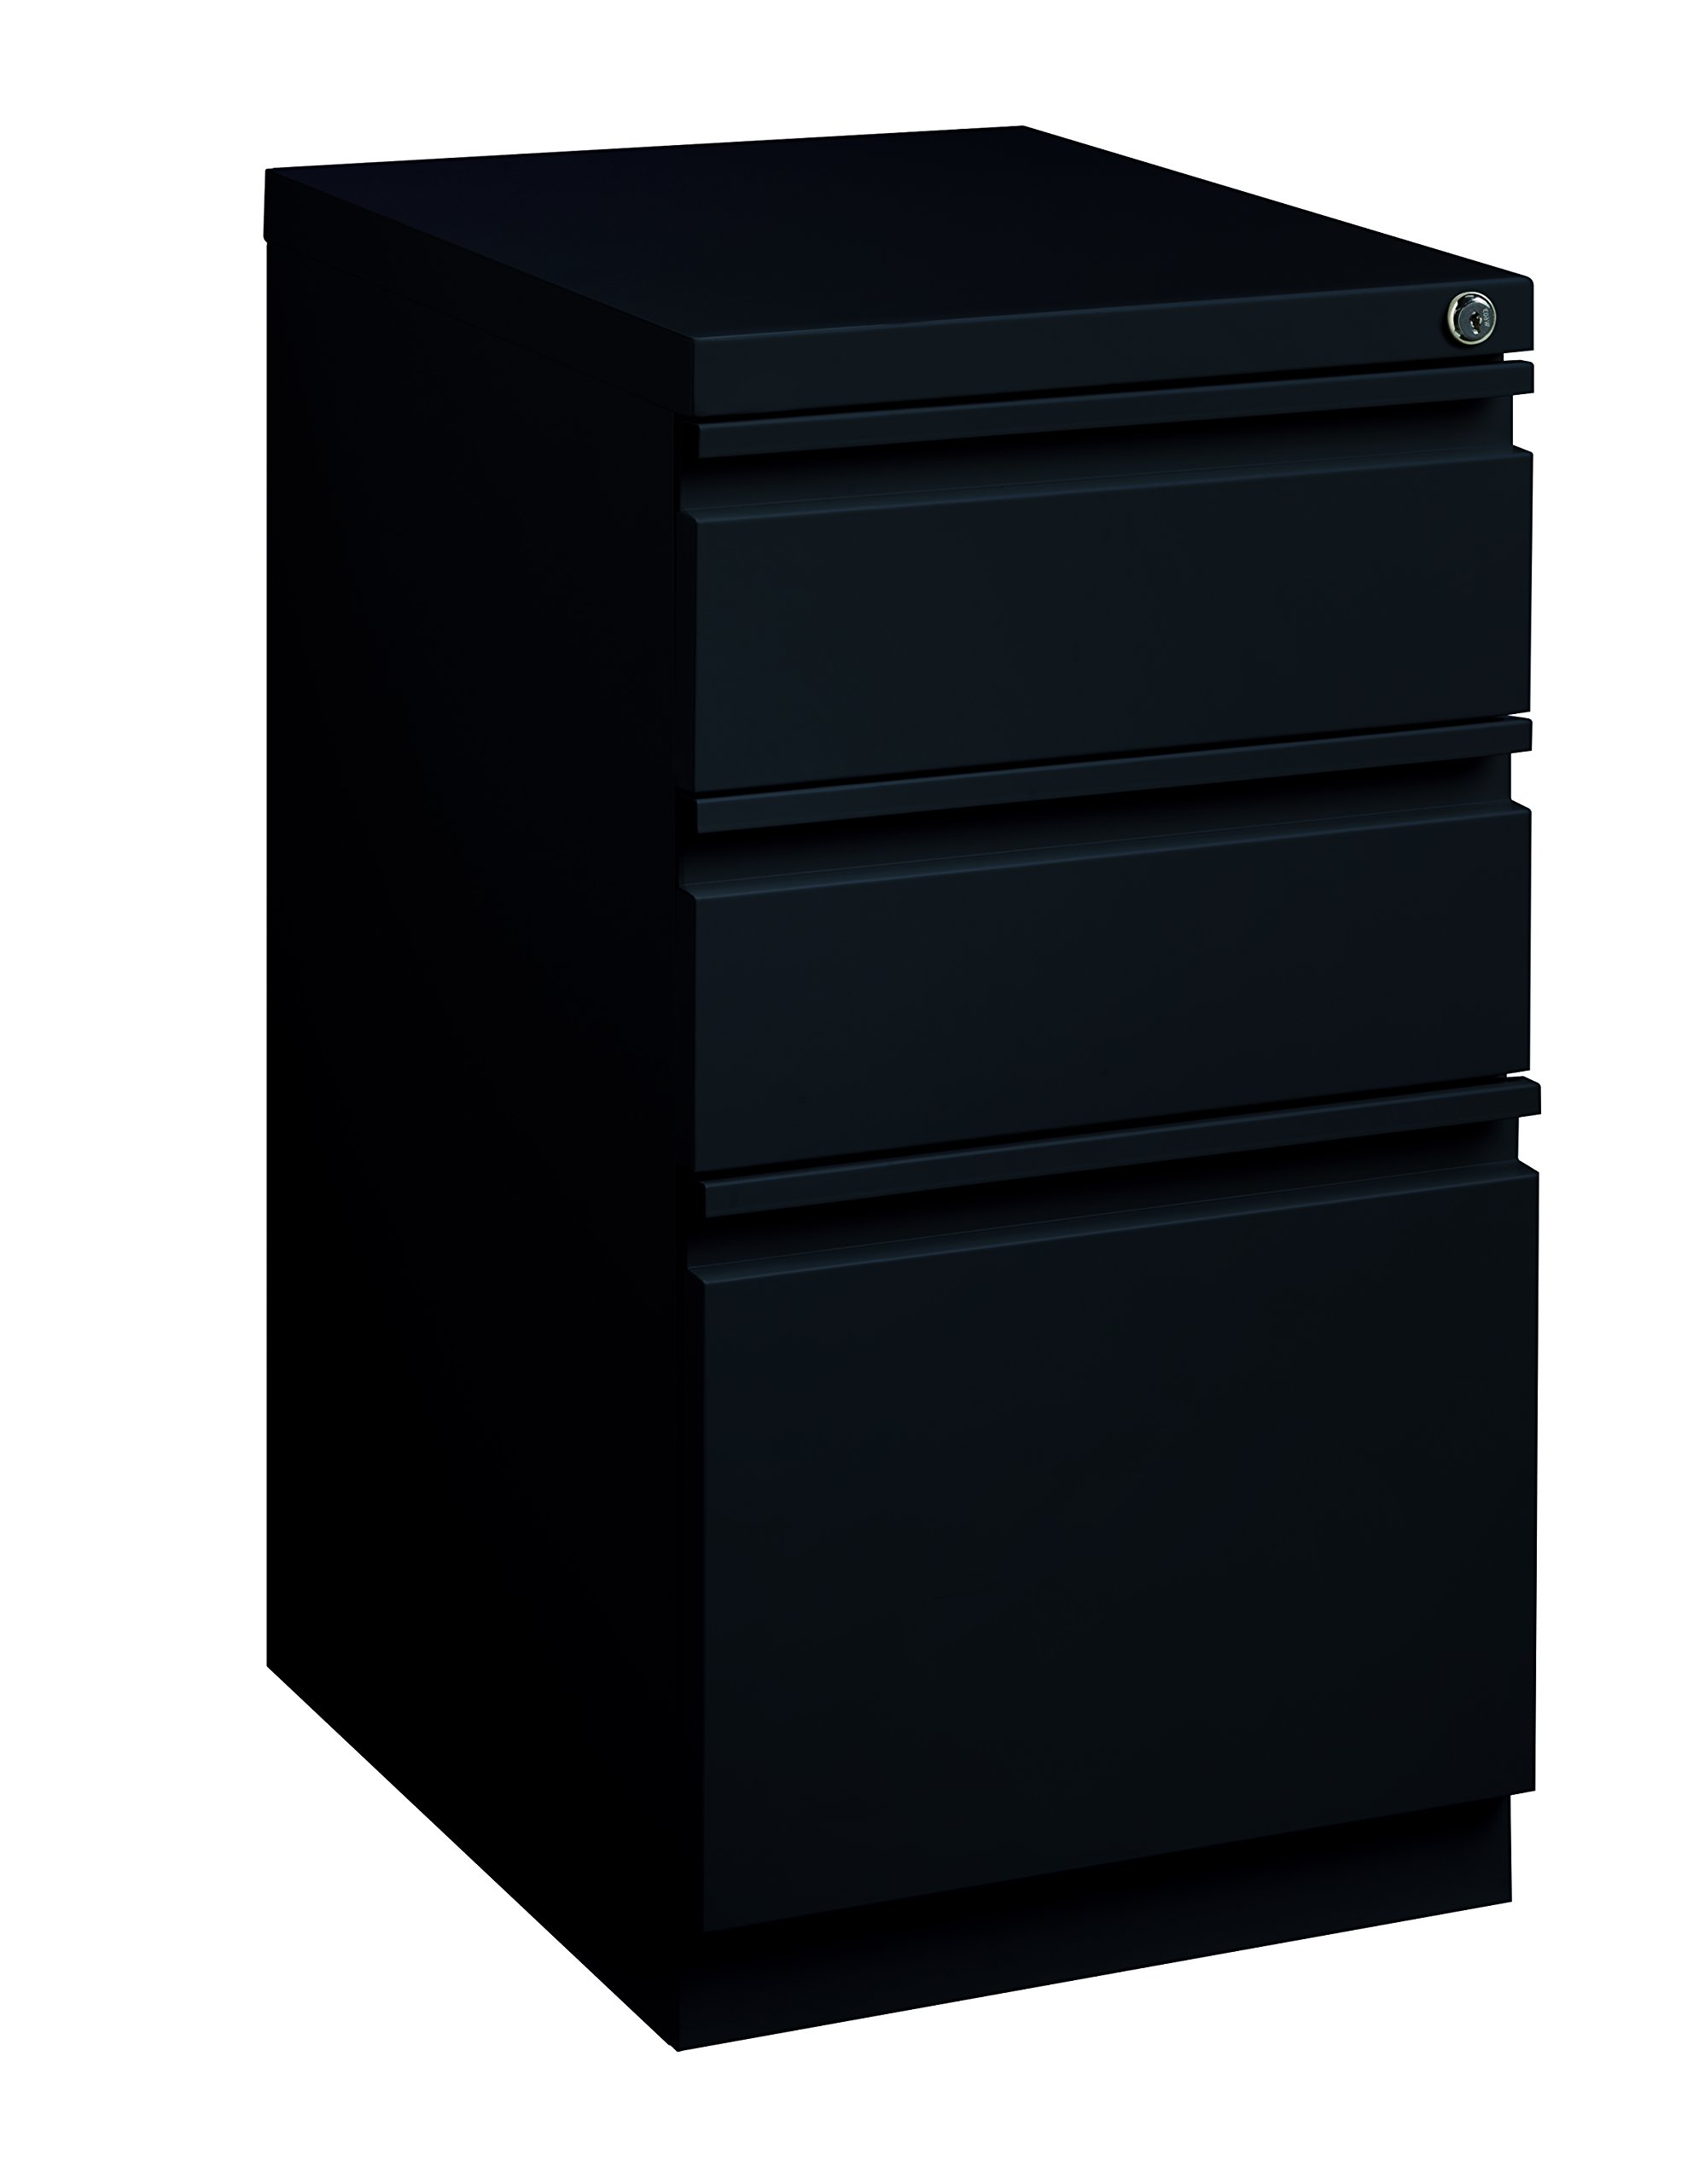 Pro Series Three Drawer Mobile Pedestal File Cabinet, Black, 20 inches deep by Pro Series